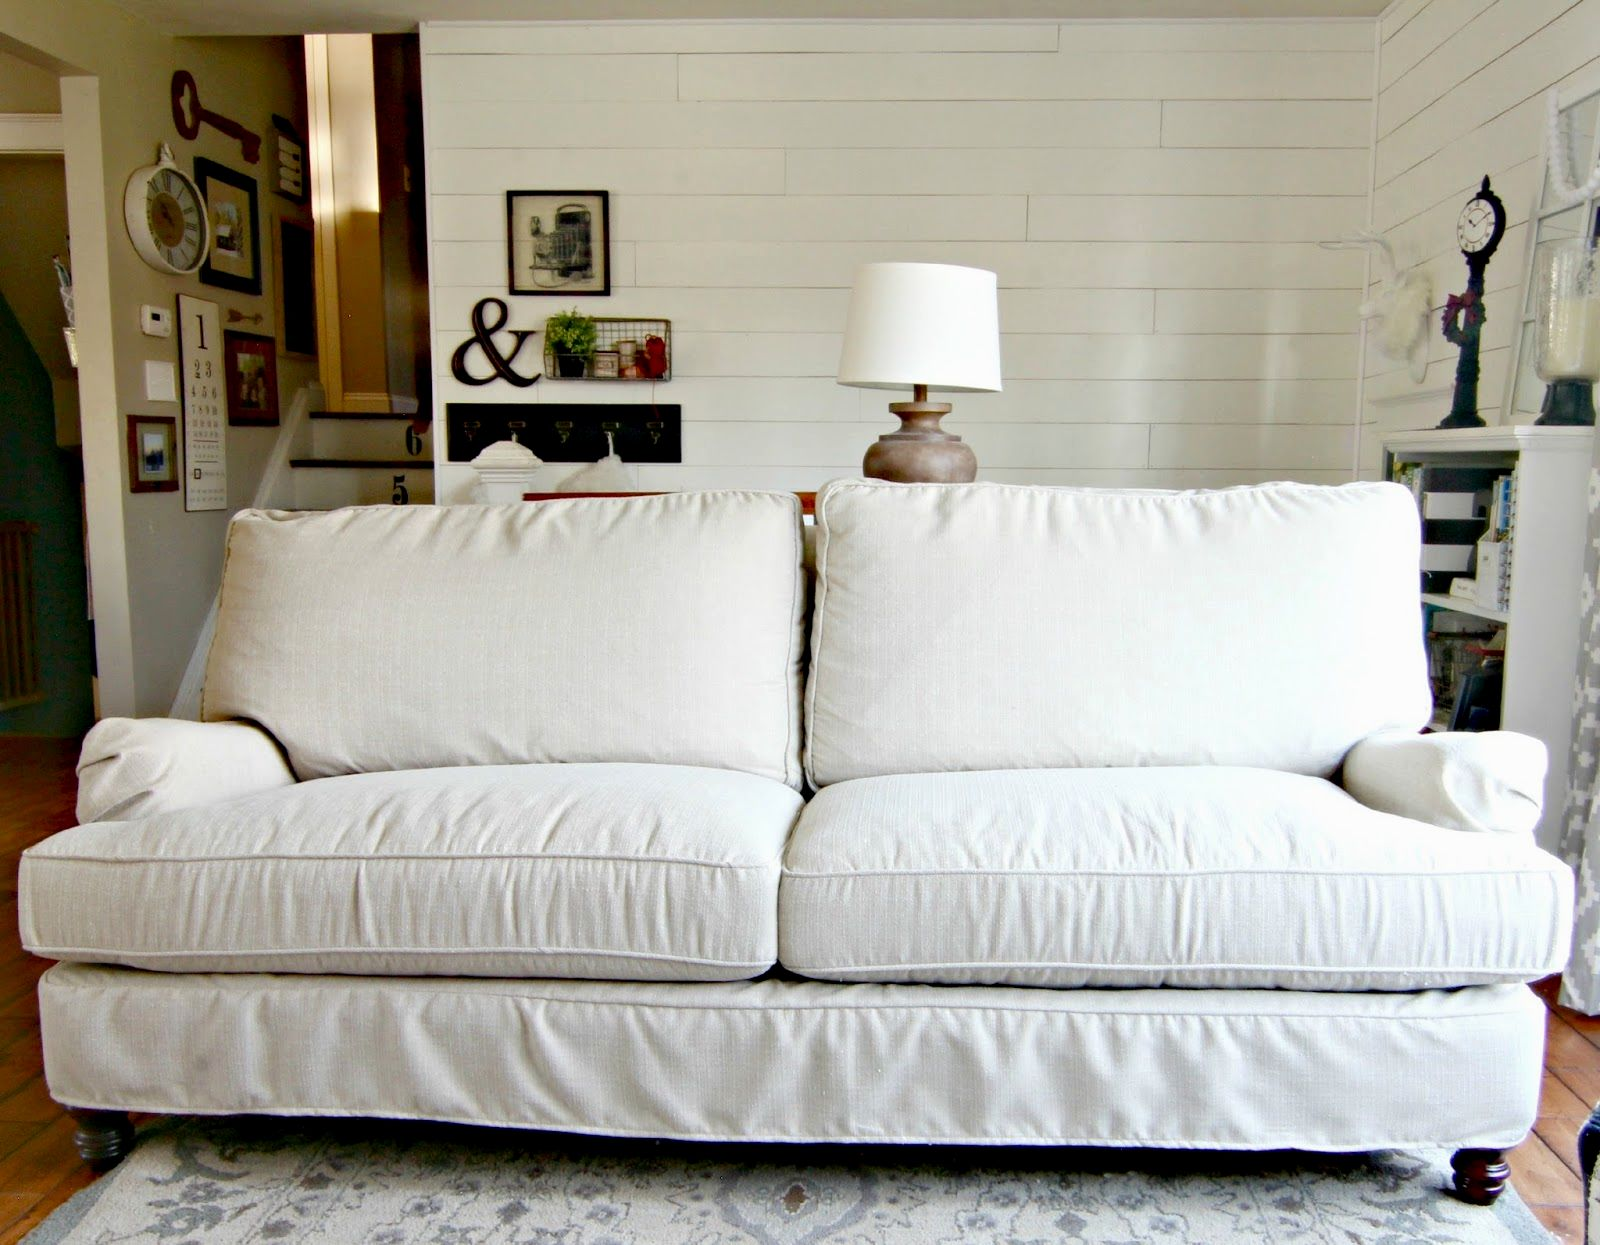 terrific sofa sleeper mattress online-Lovely sofa Sleeper Mattress Inspiration